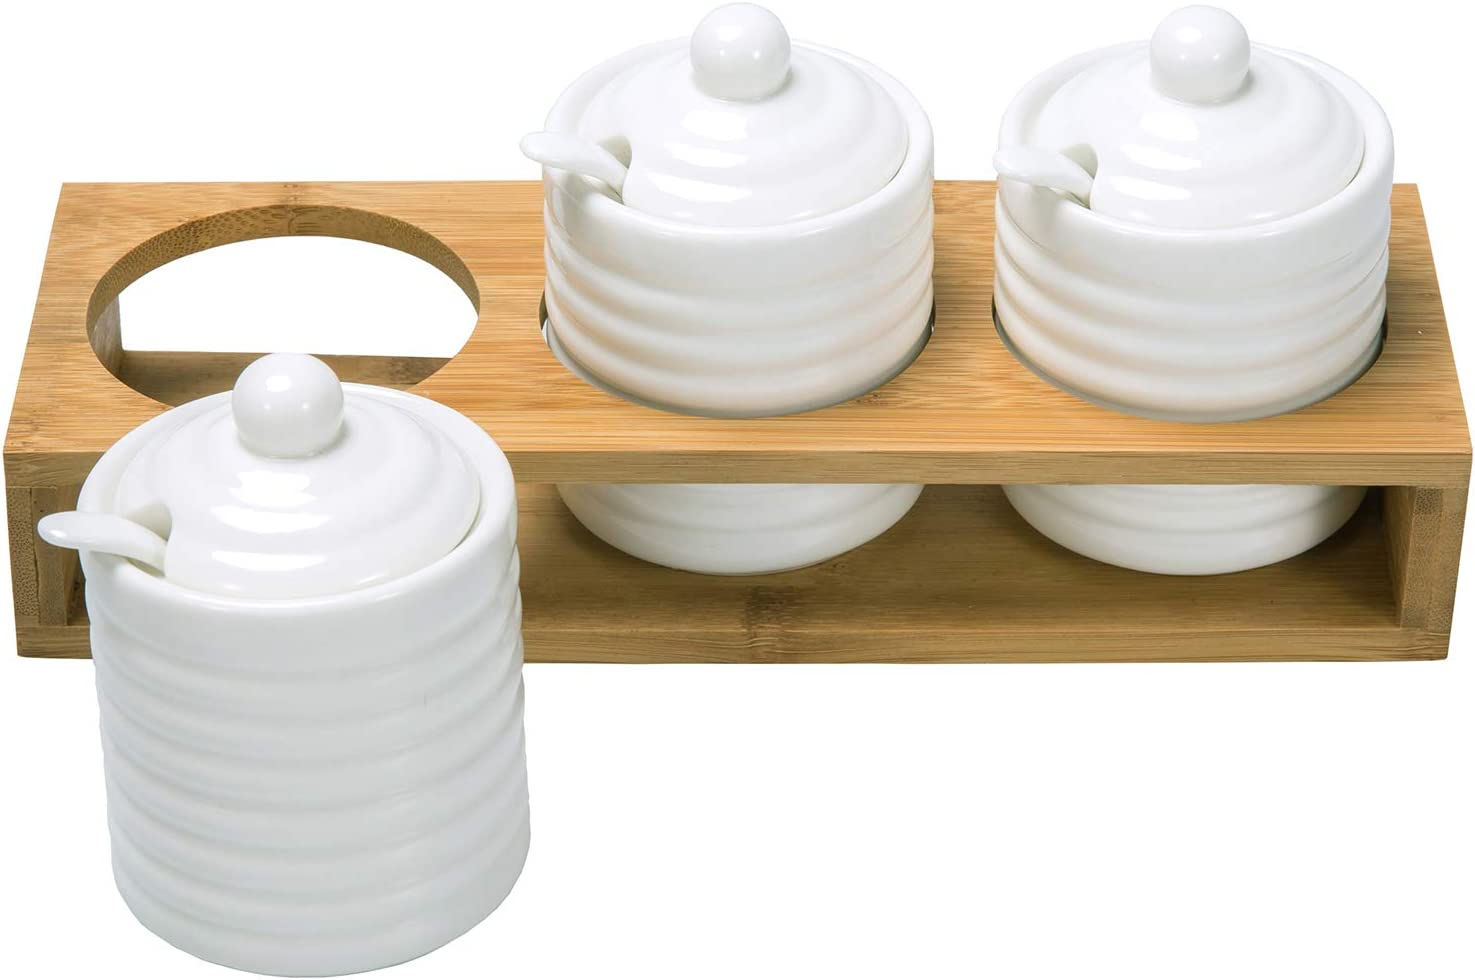 MyGift Modern White Ribbed Ceramic Home Kitchen Spice, Condiment Storage Jars with Lids, Spoons and Natural Bamboo Tray